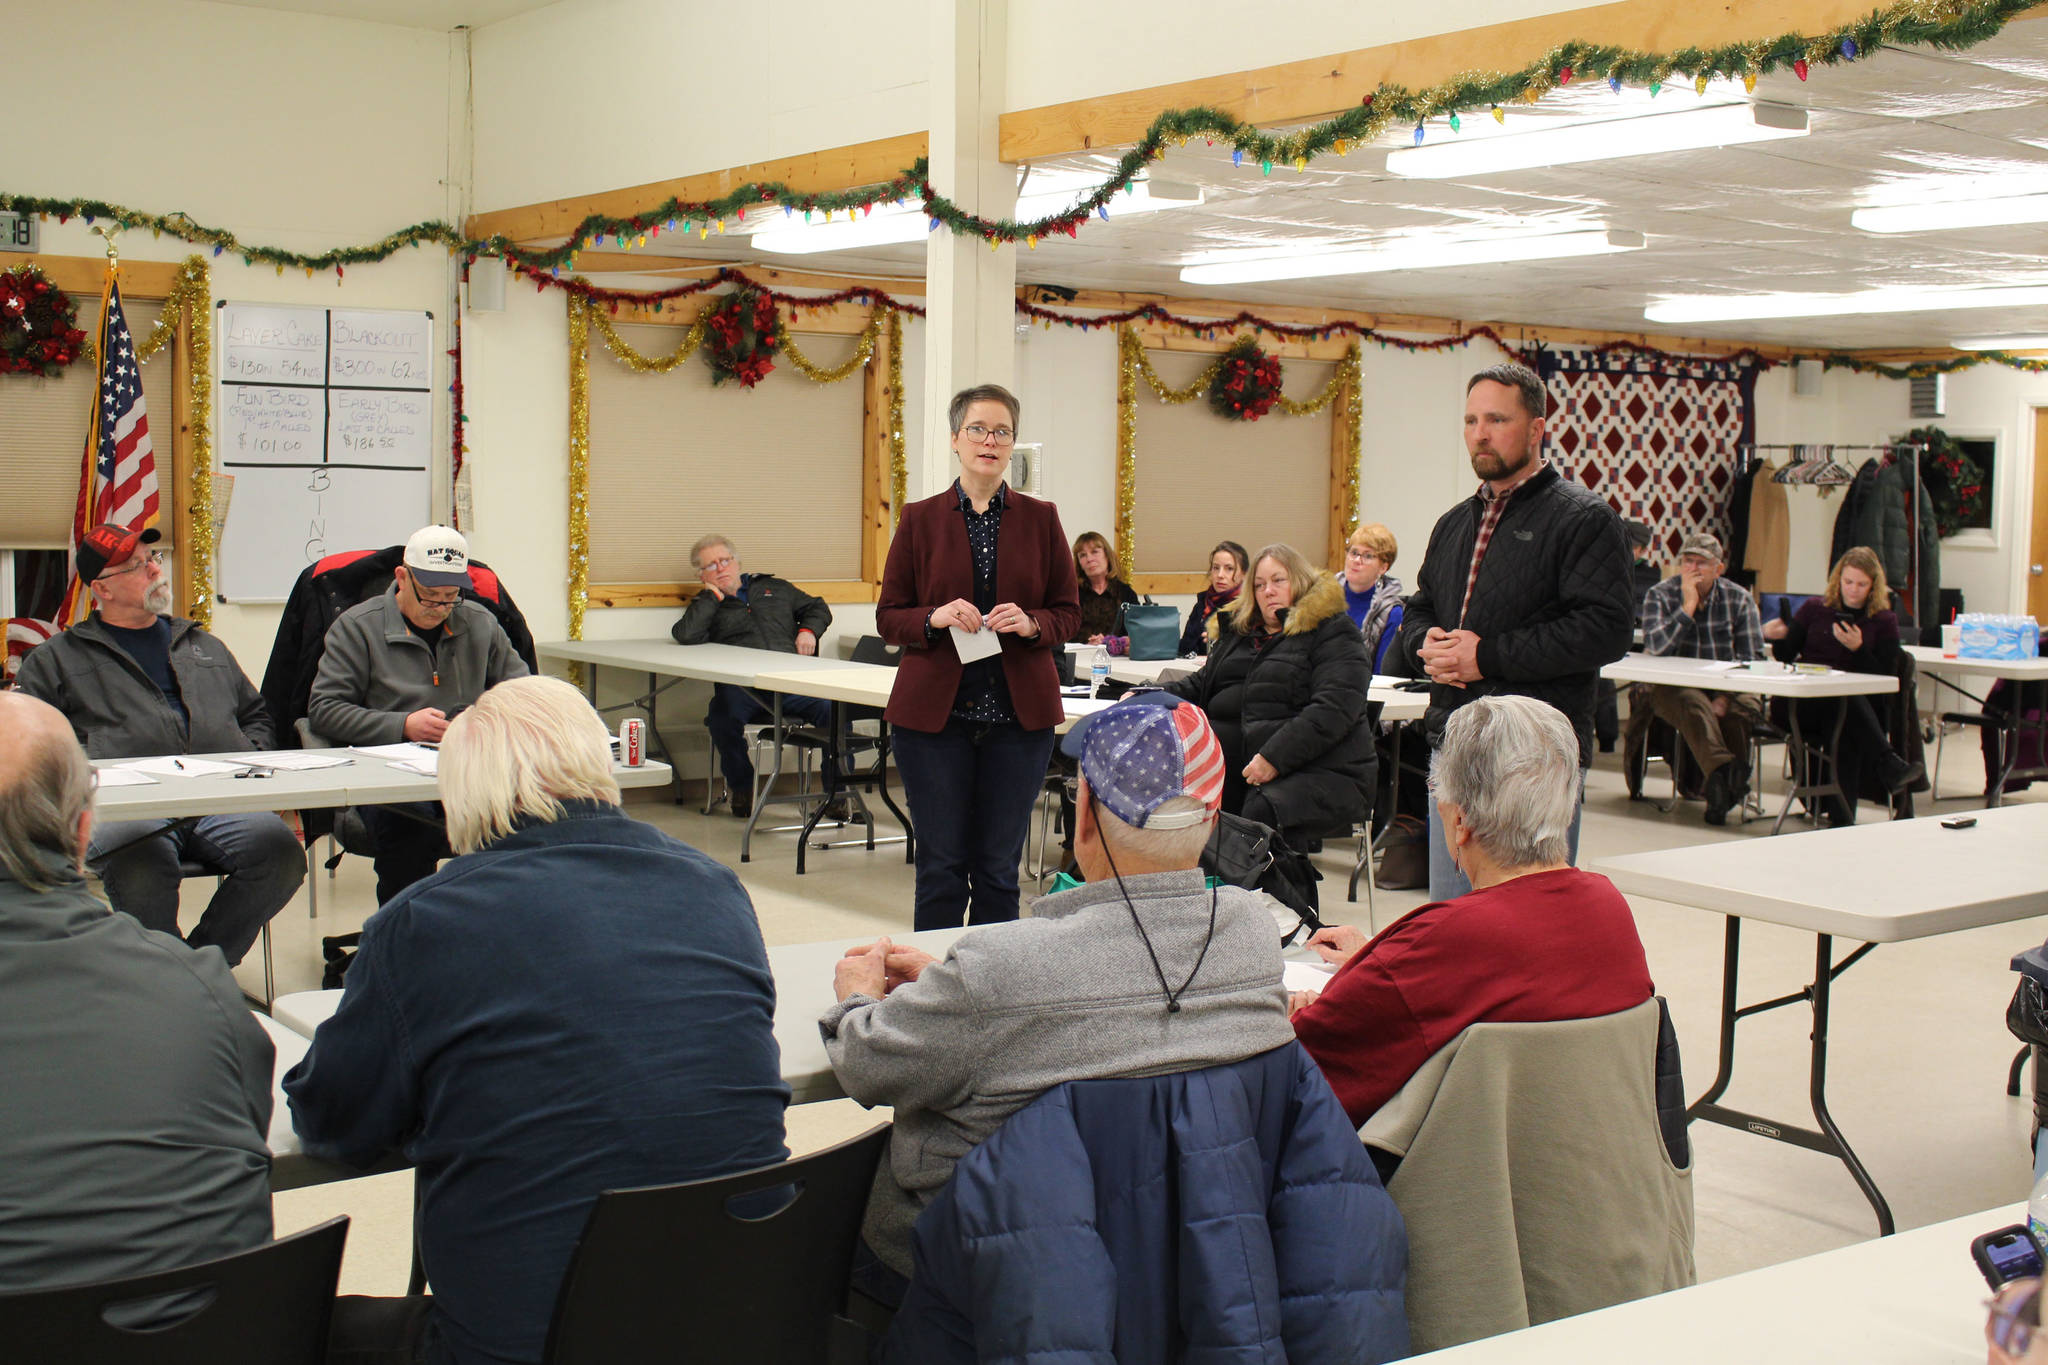 Brian Mazurek / Peninsula Clarion                                 Rep. Sarah Vance (R-Homer), left, and Rep. Ben Carpenter (R-Nikiski) speak to constituents during a town hall at the Funny River Community Center in Funny River on Thursday.